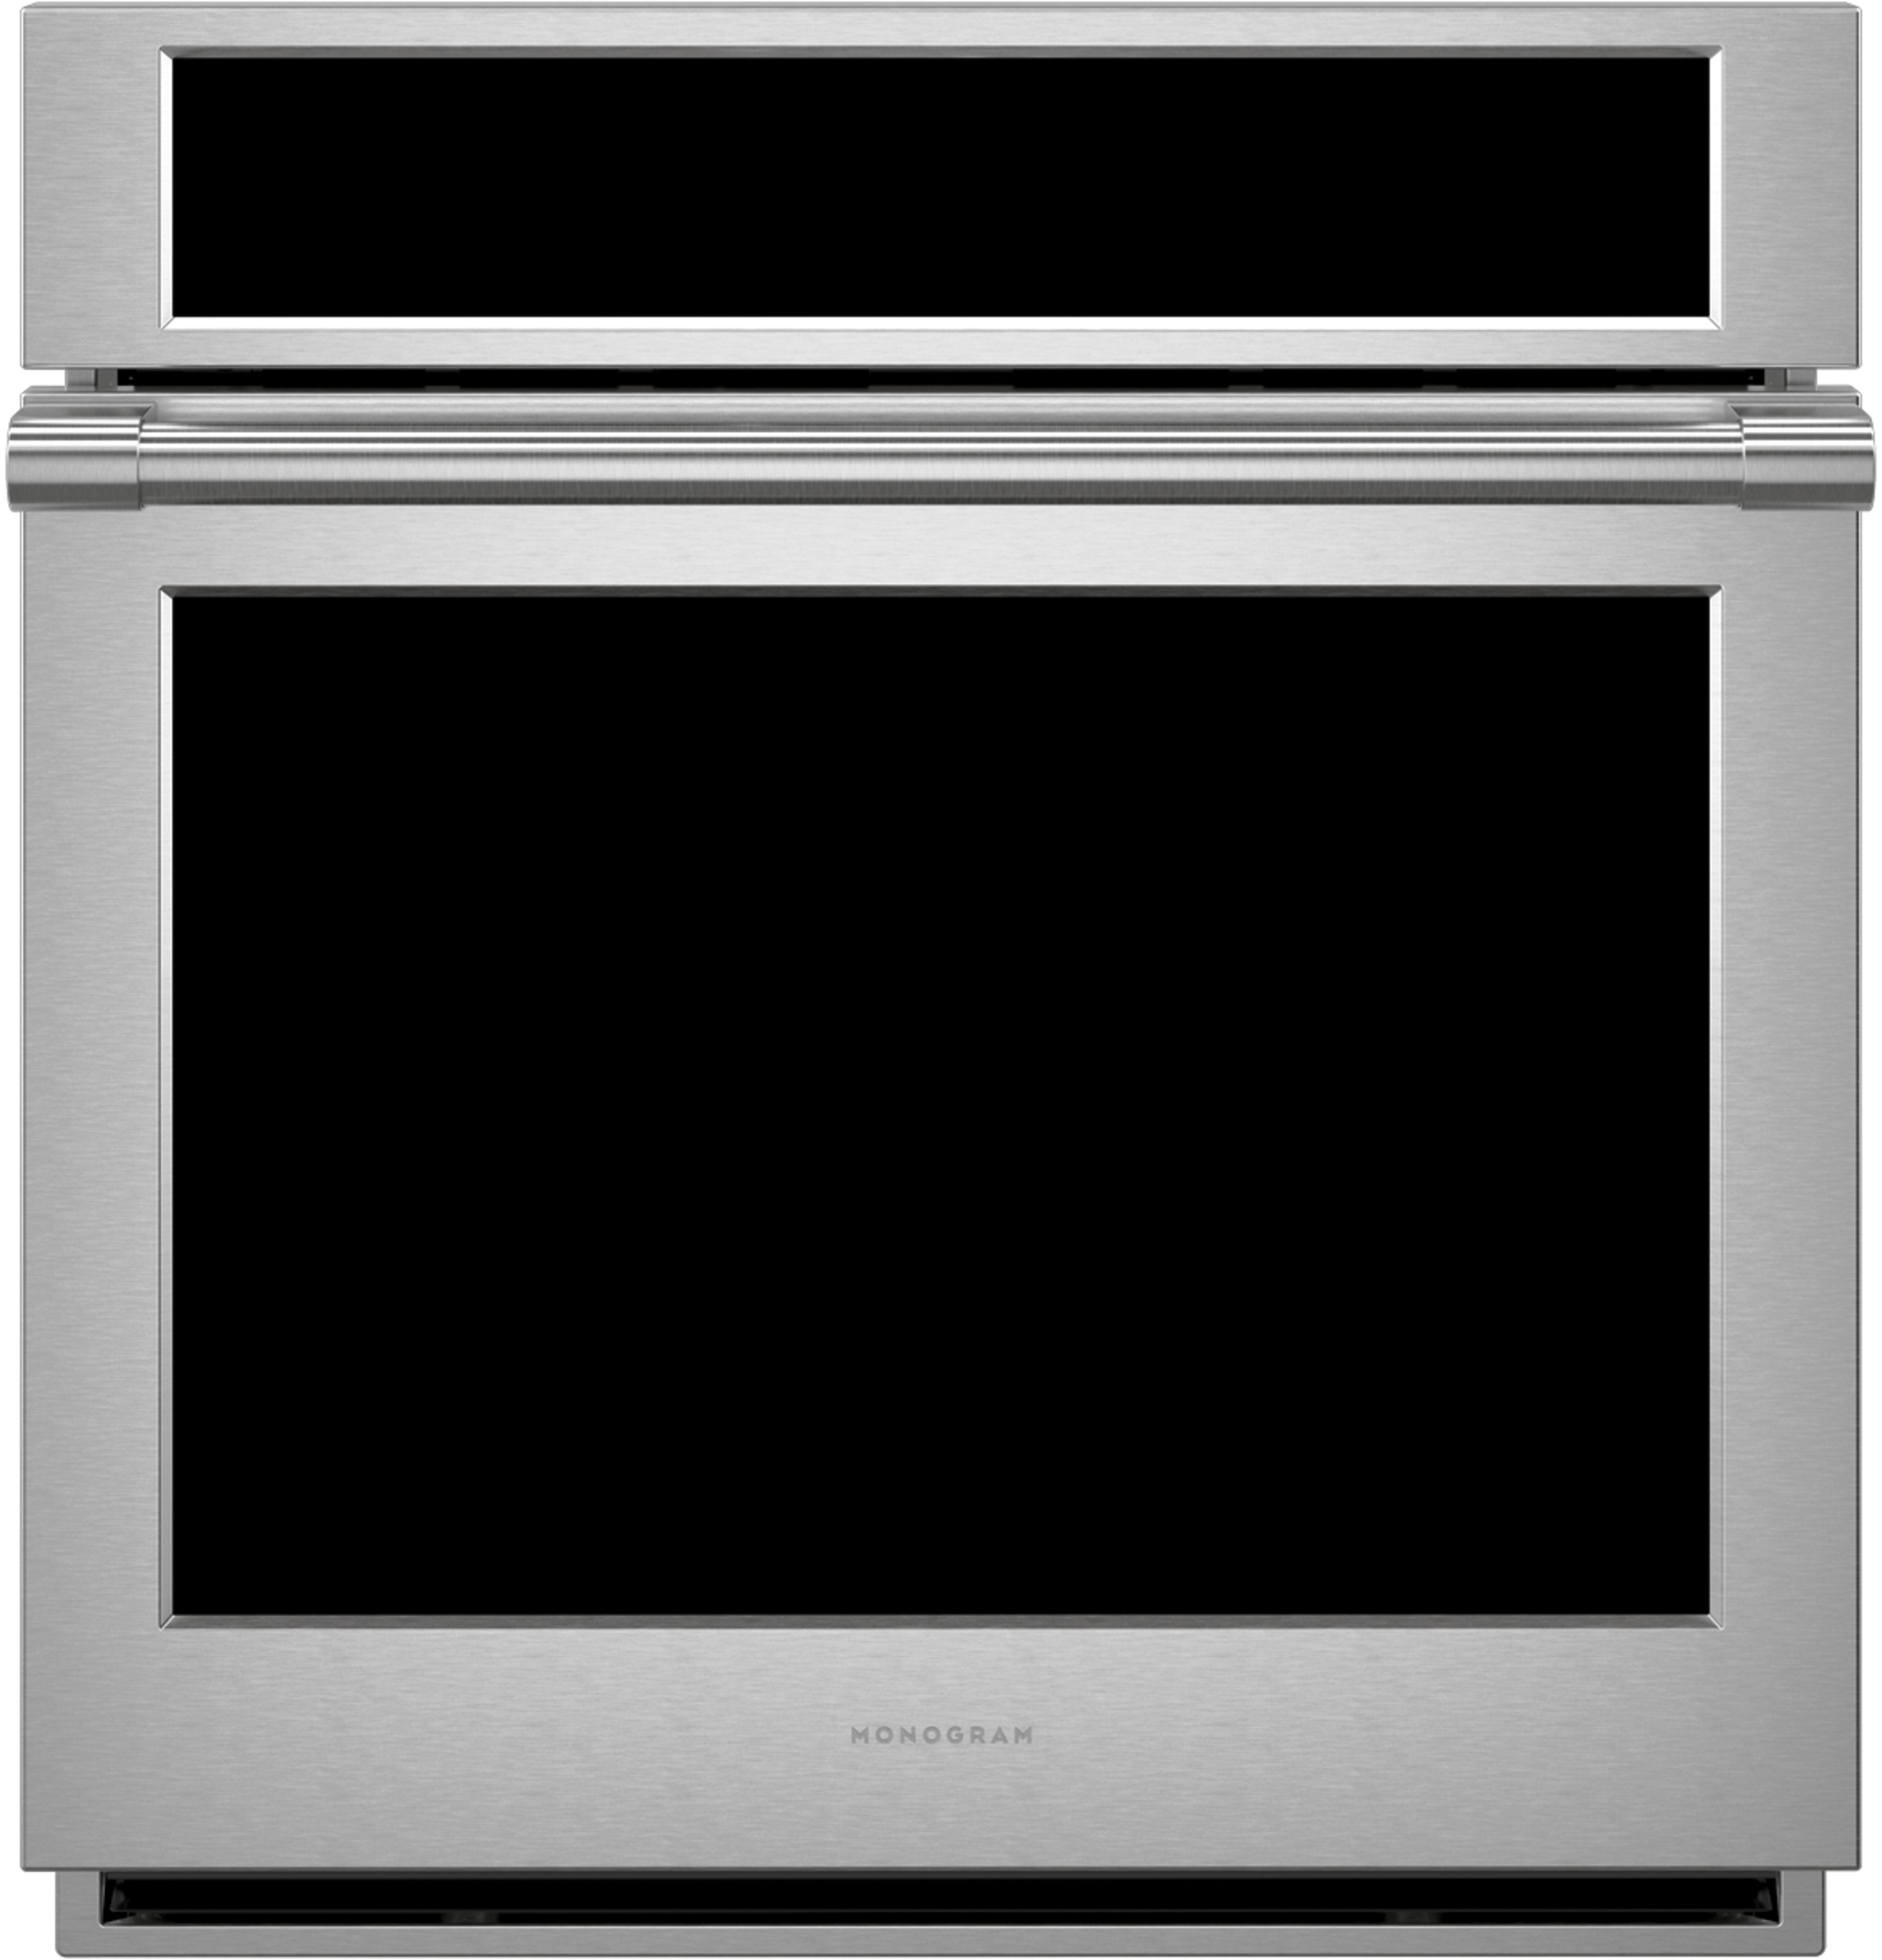 "Monogram Monogram 27"" Smart Electric Convection Single Wall Oven Statement Collection"